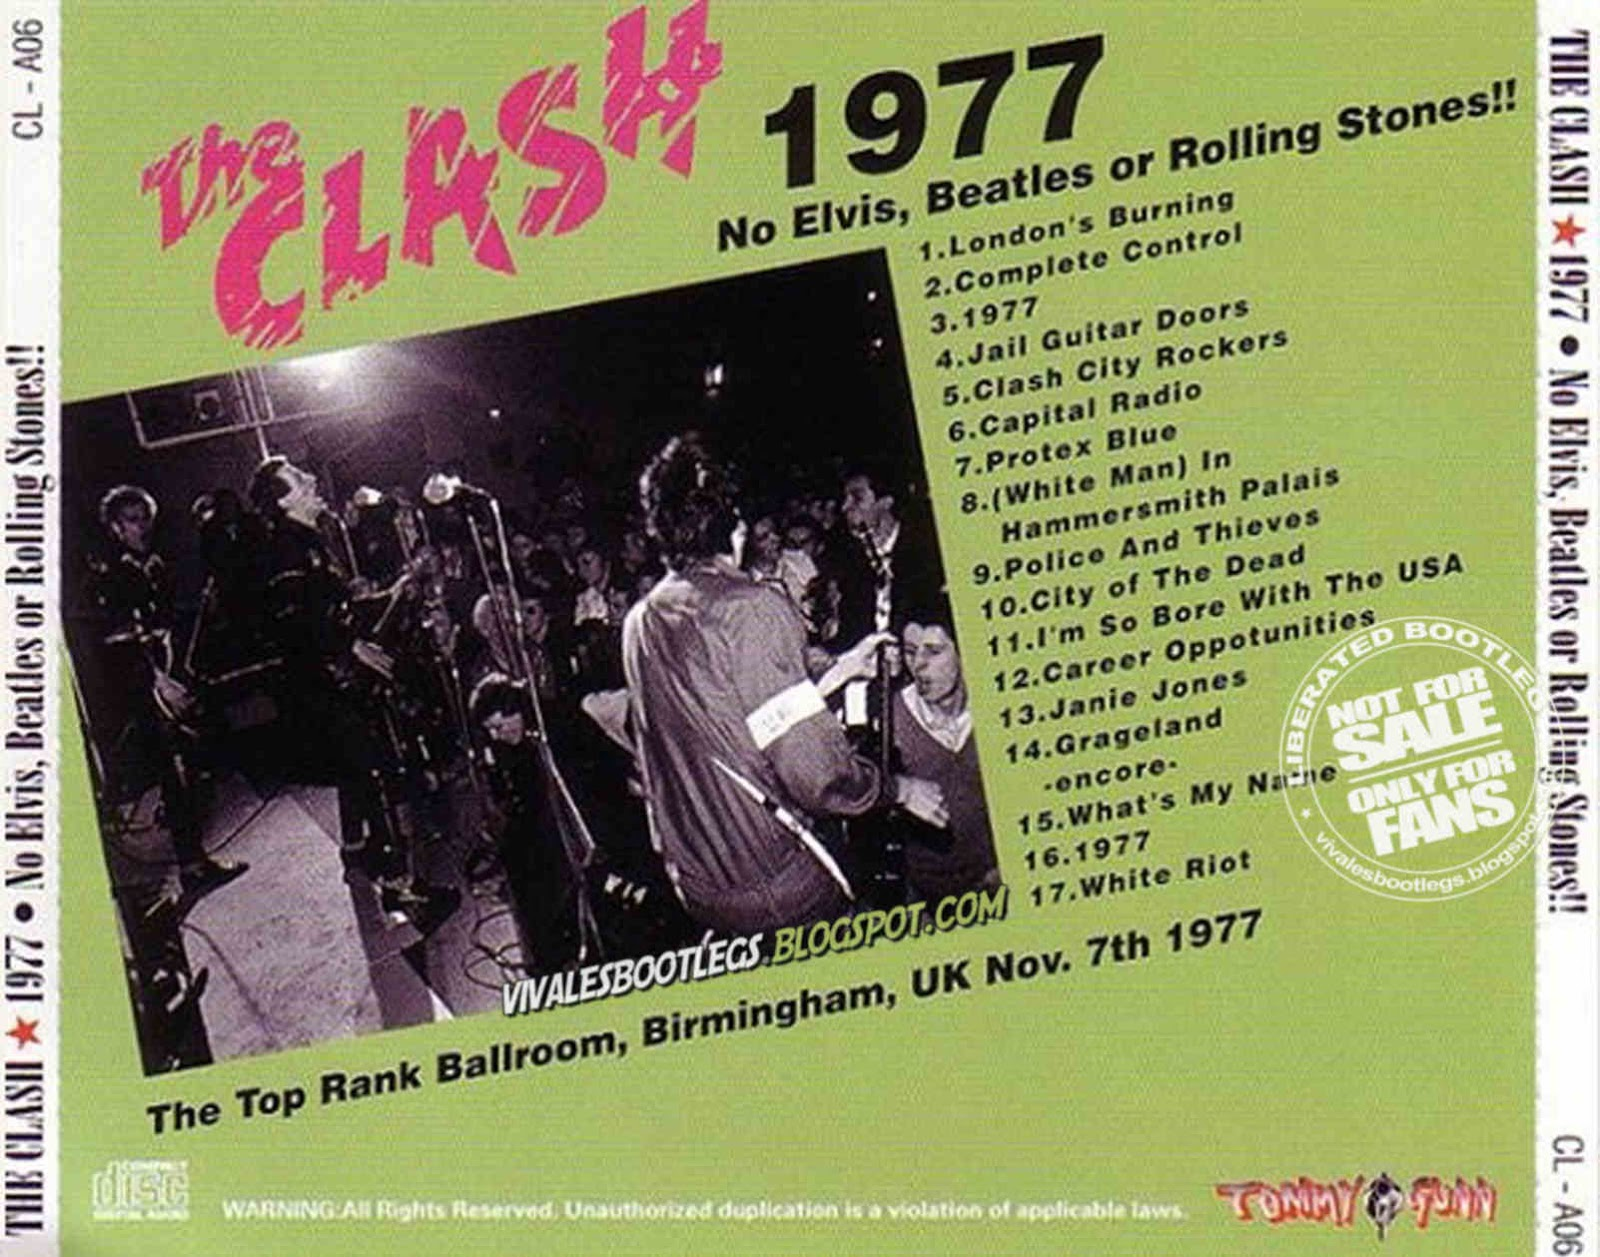 The Clash: 1977, No Elvis, Beatles Or Rolling Stones! The Top Rank